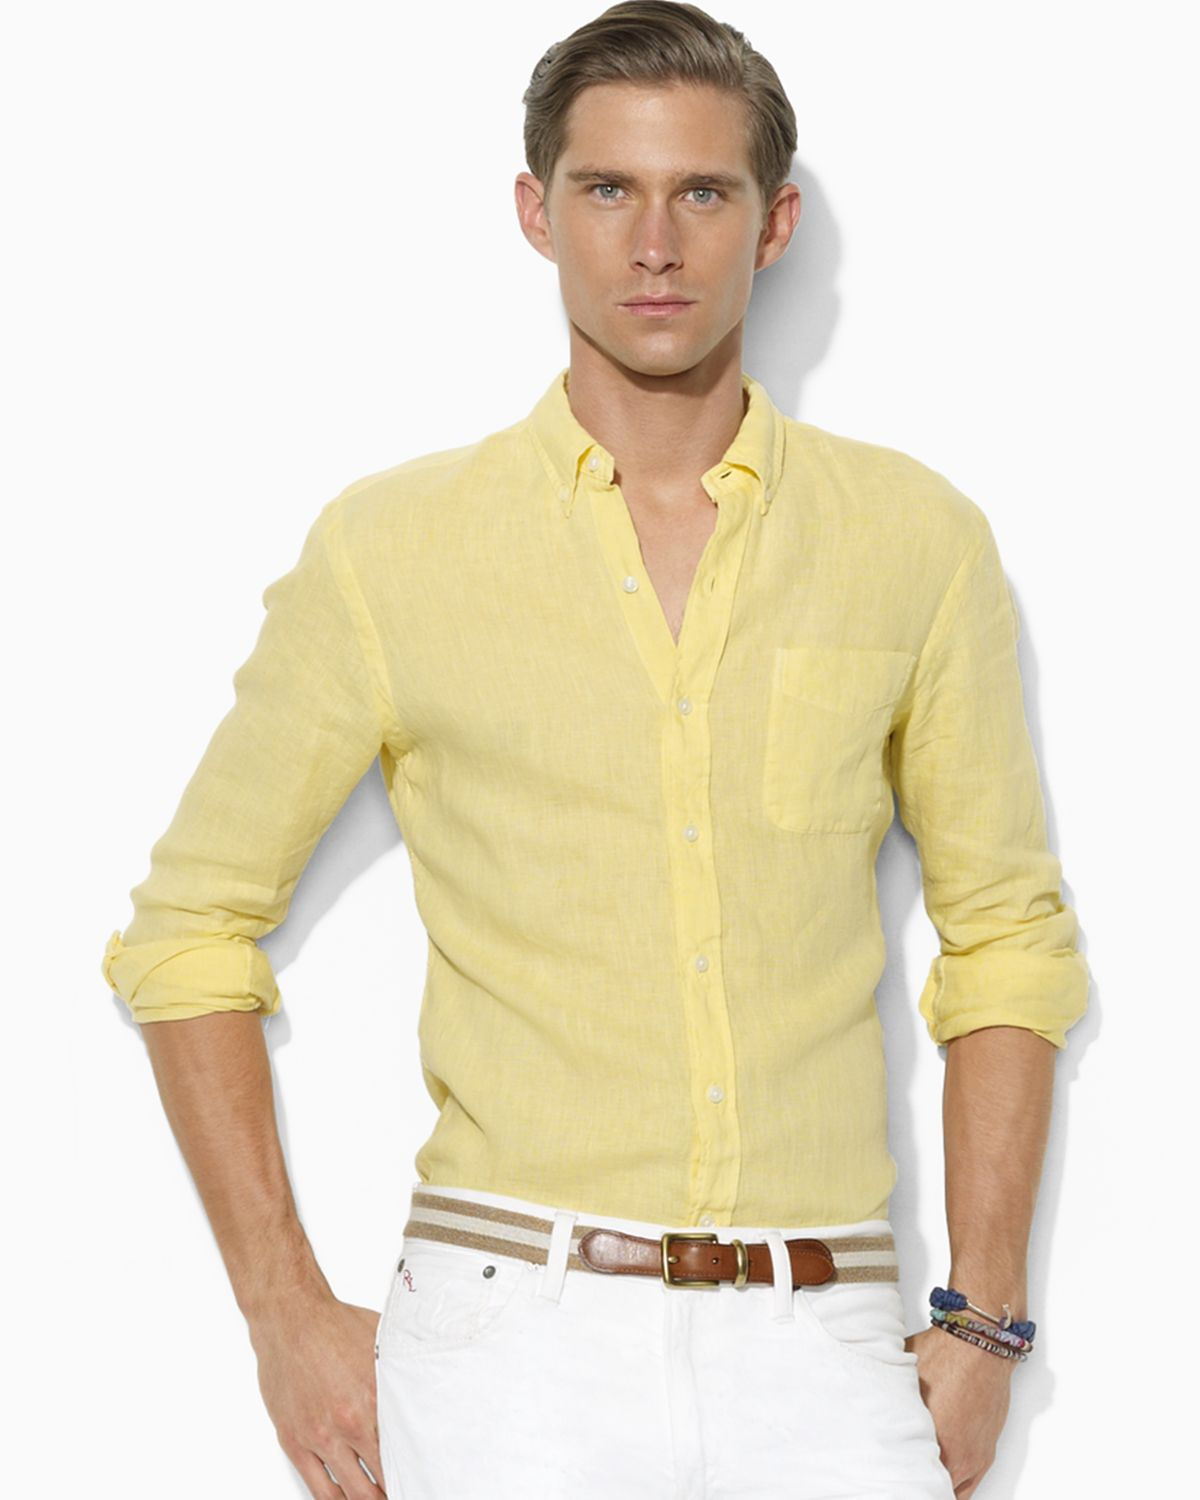 Ralph lauren Polo Customfit Linen Button Down Shirt in Yellow for ...